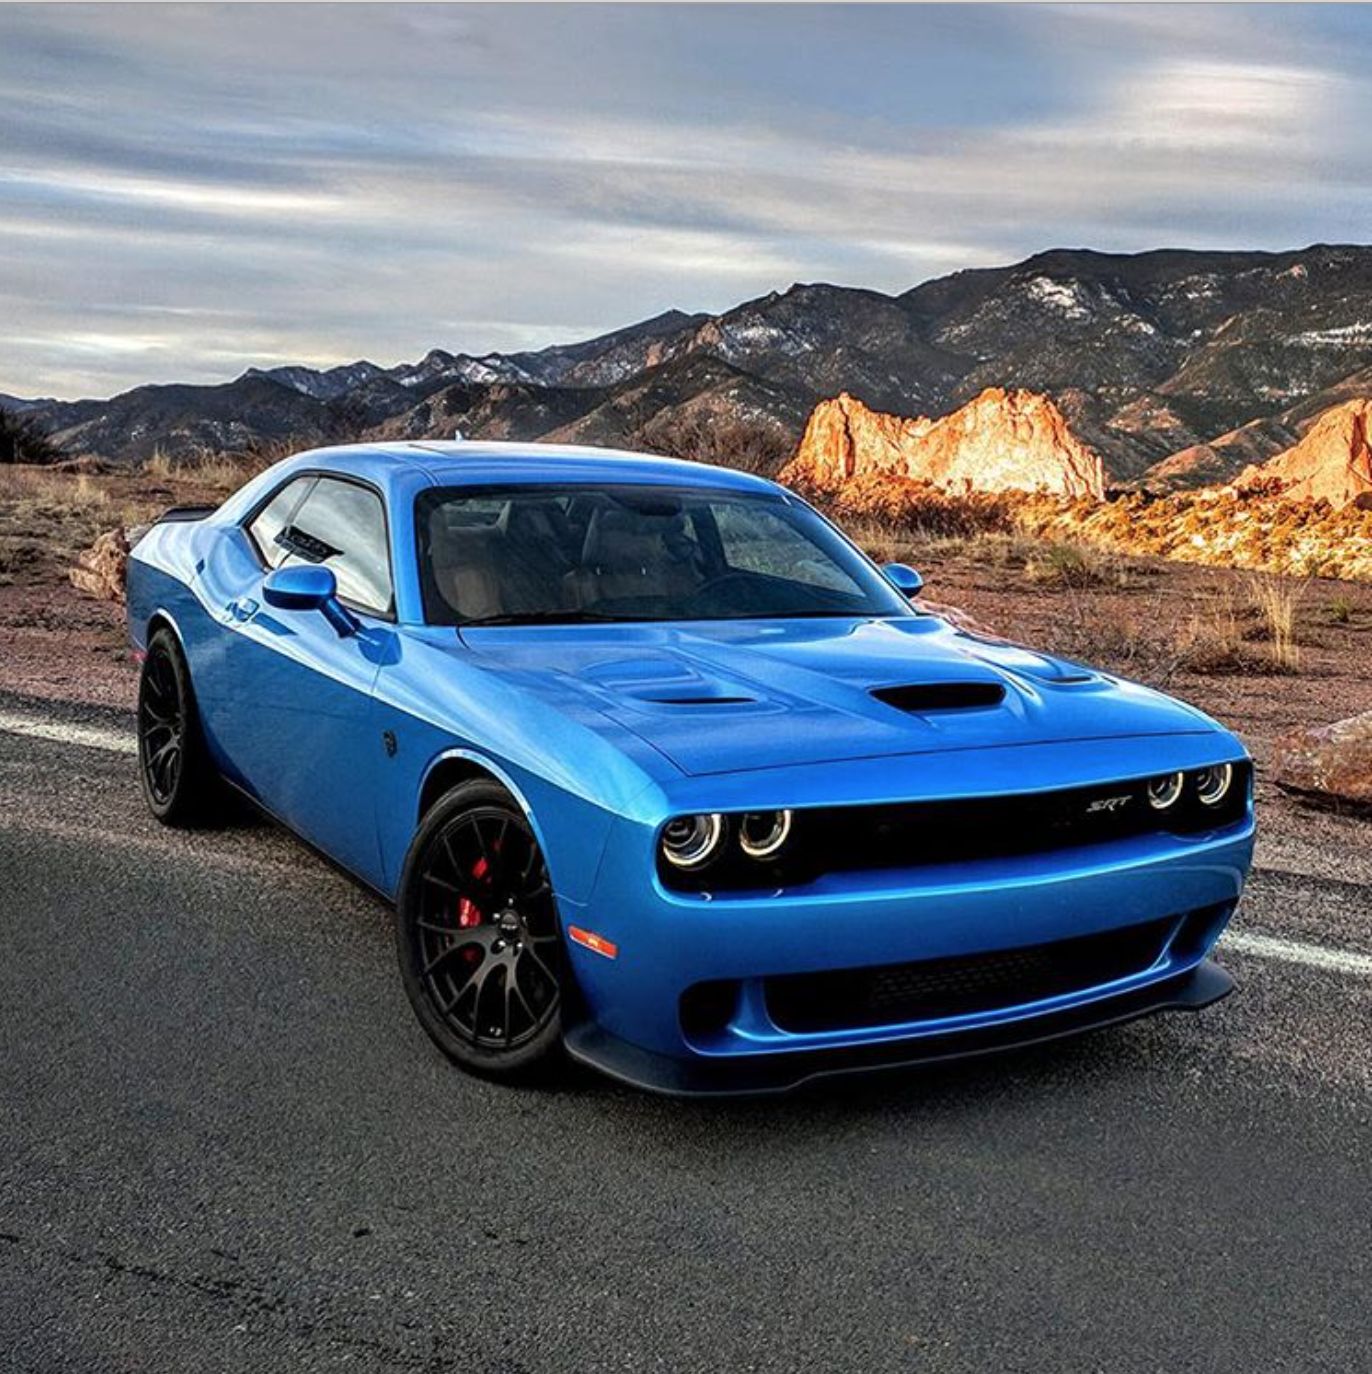 Dodge Challenger SRT Hellcat In B5 Blue Pearl